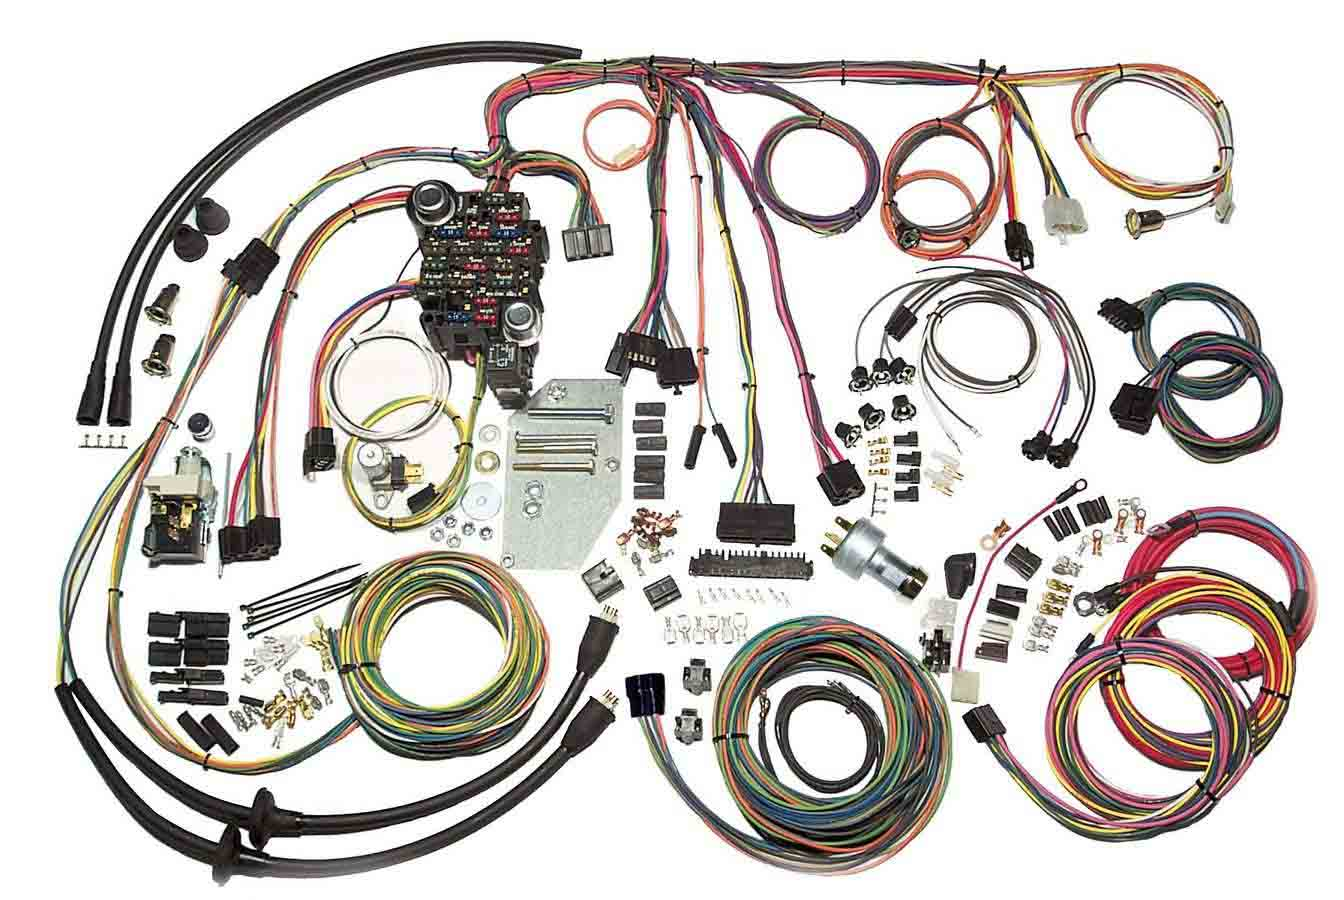 hight resolution of old car wiring harness wiring diagram filter classic car wiring harness manufacturers vintage car wiring harness